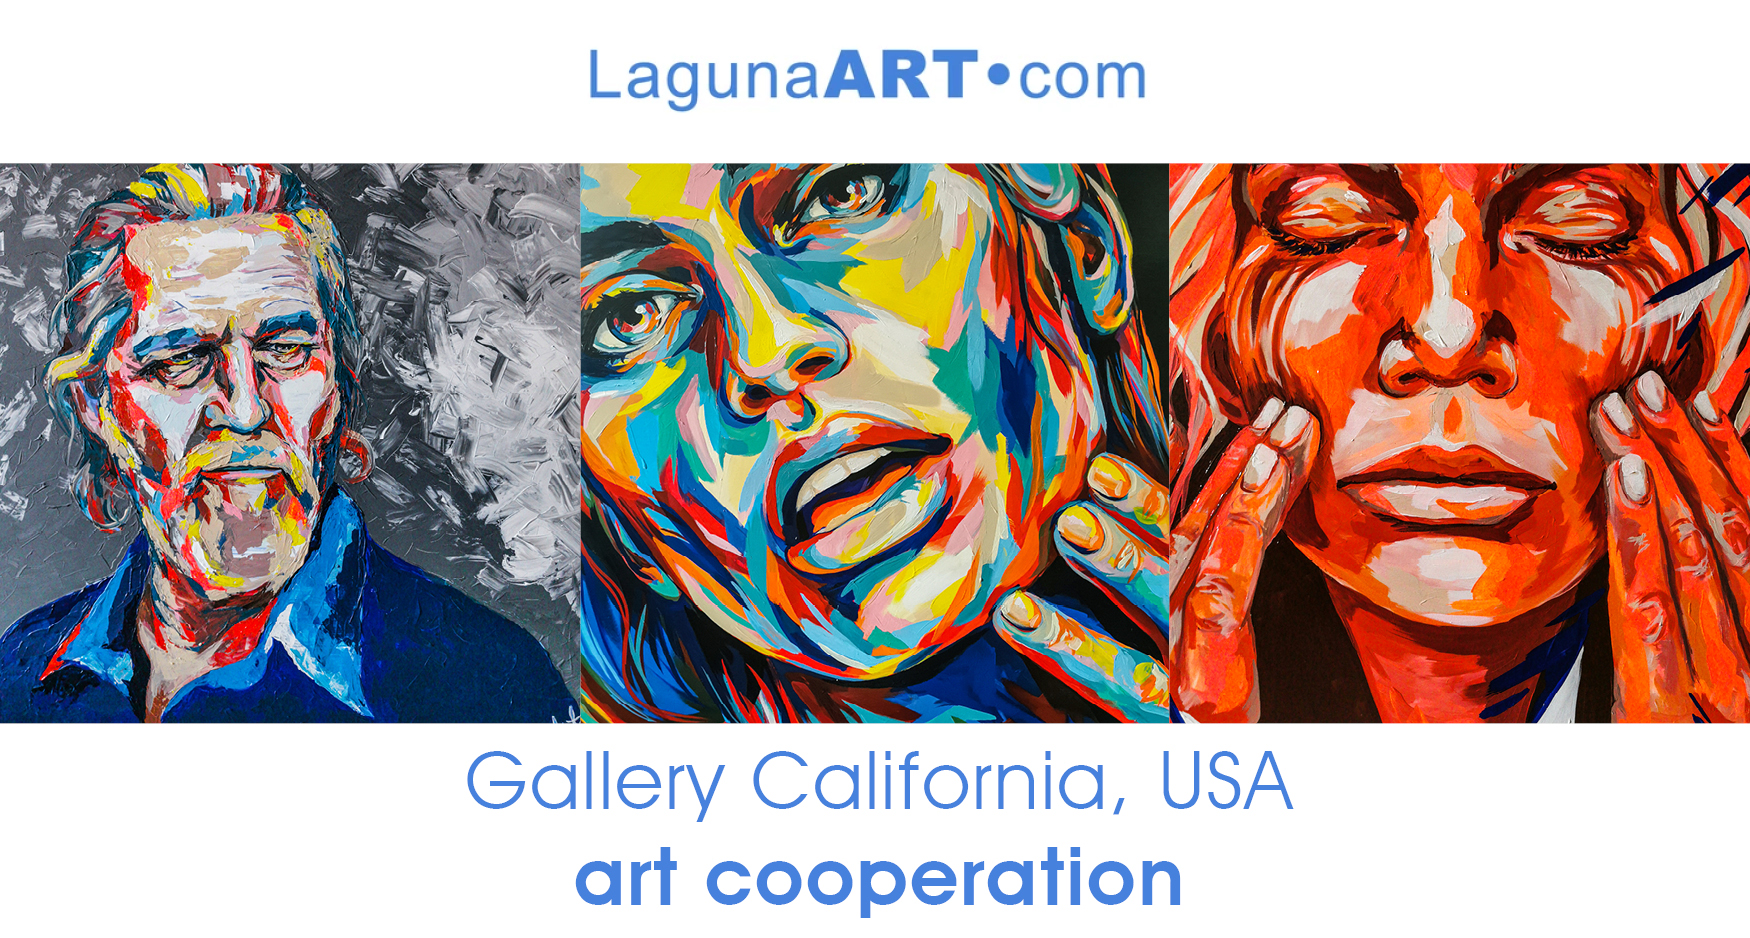 german, art, artist, laguna art, lagungaart, gallery, usa, California, Portraitspaintings, protraits, faces, colourful, Carolyn Mielke, popart, faces, mielke, contemporaryart